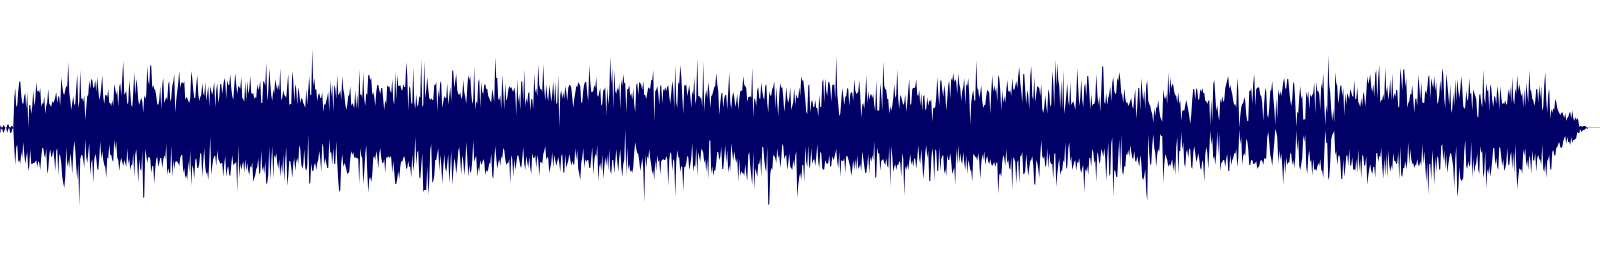 waveform of track #92895